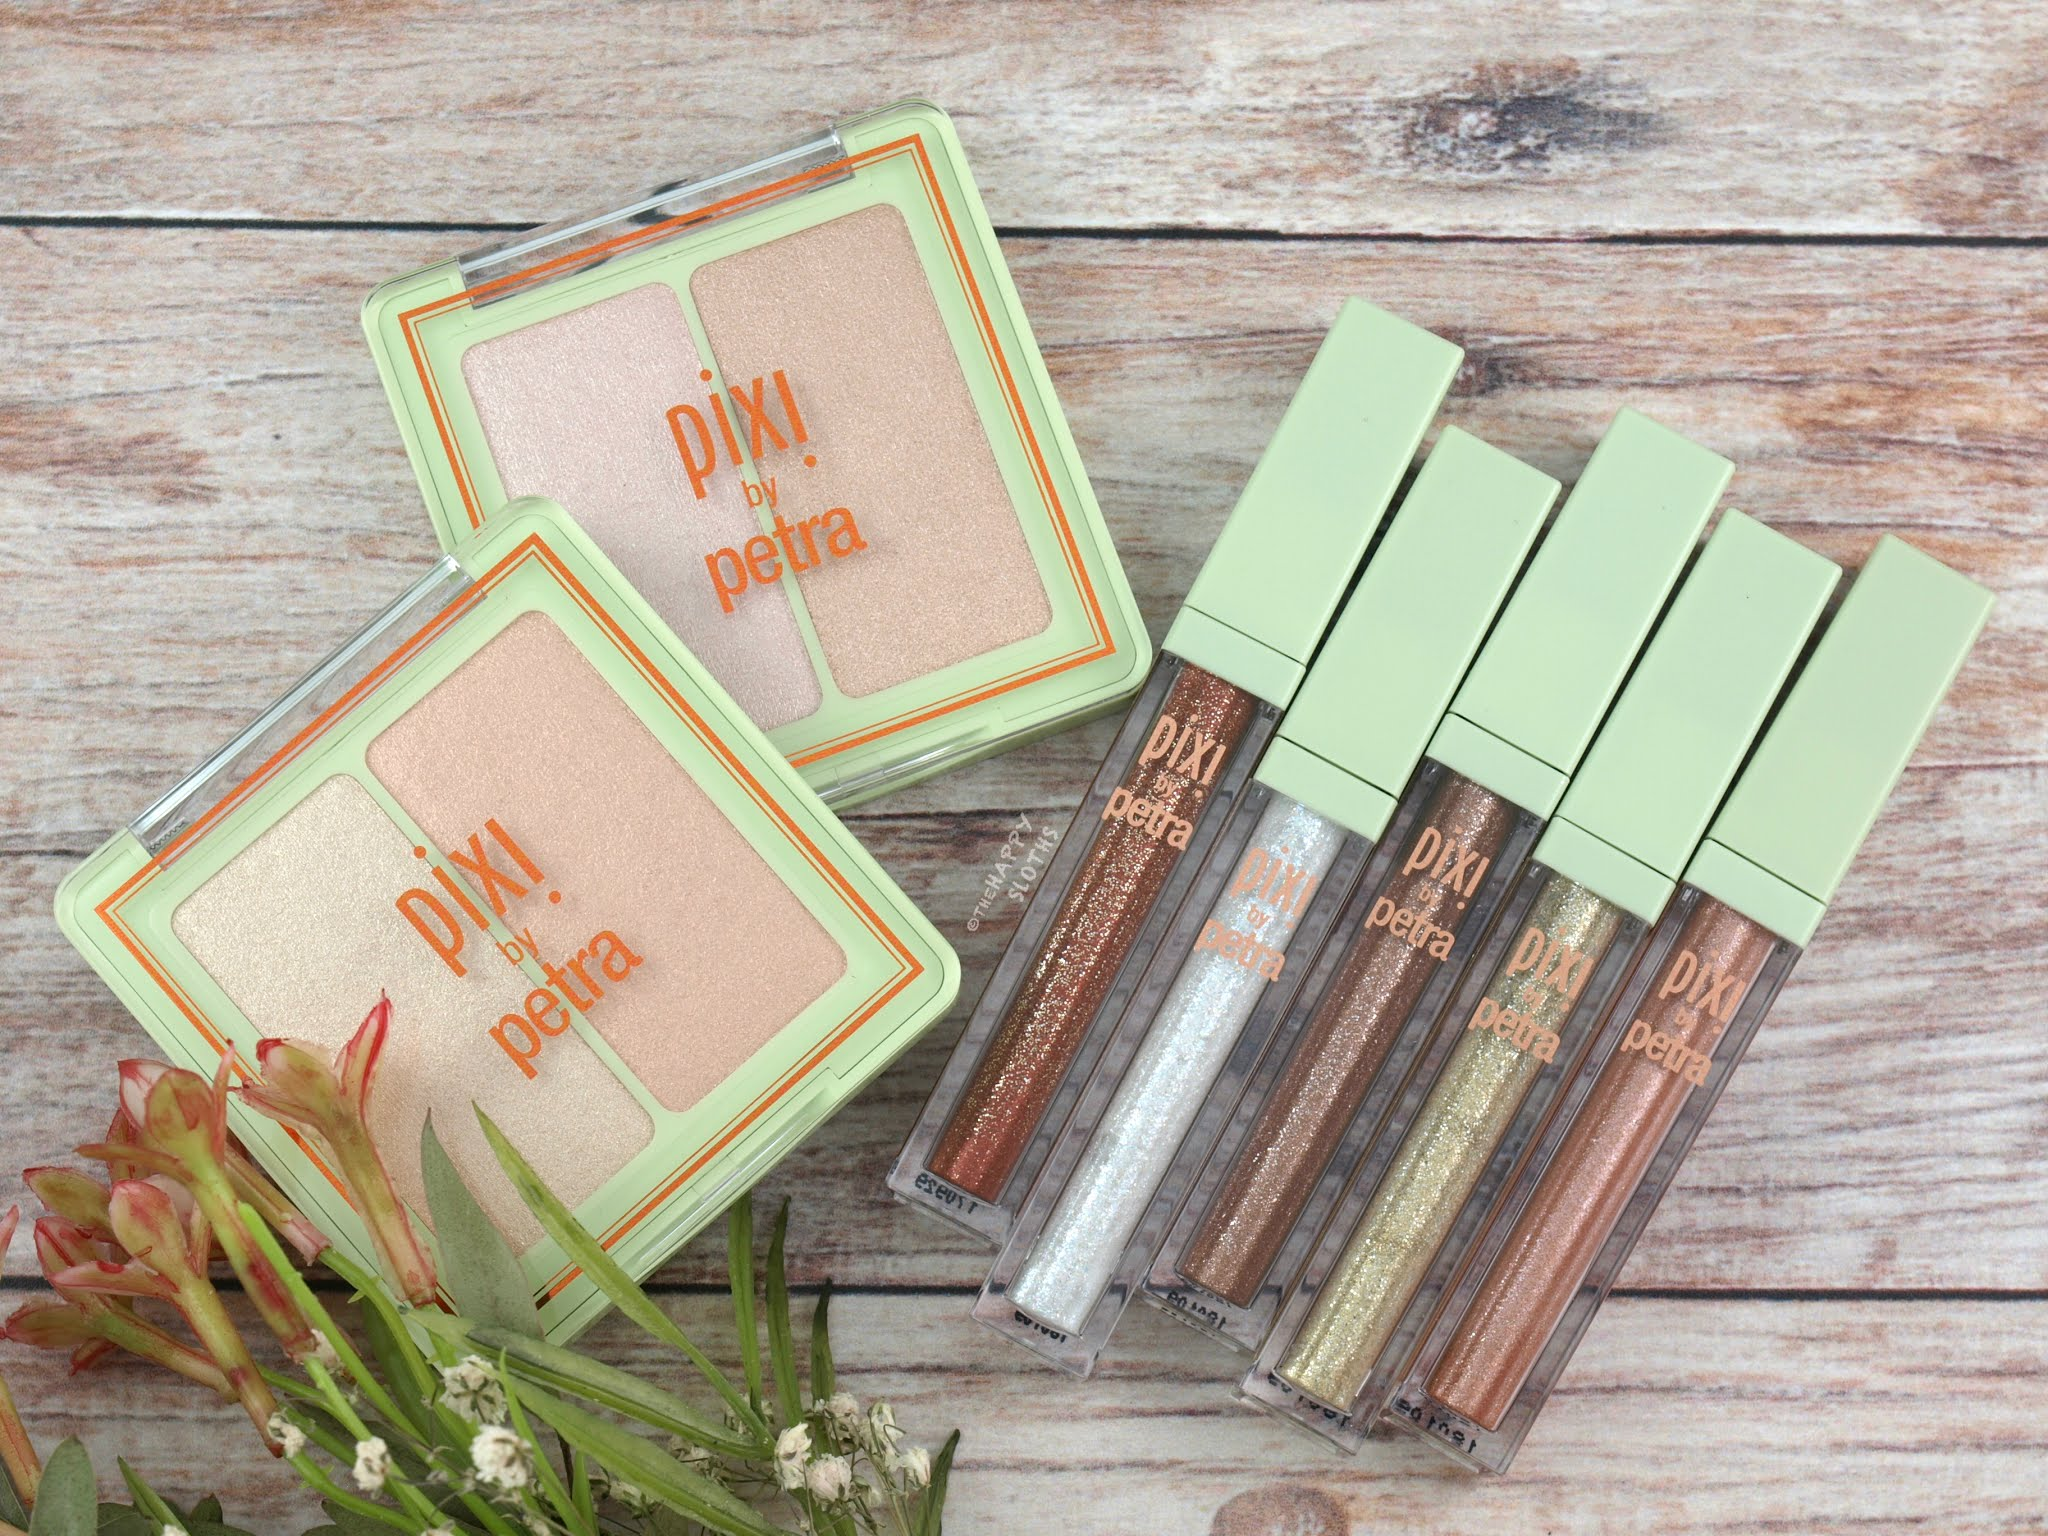 Pixi | Glow-y Gossamer Duo & Liquid Fairy Lights Eyeshadow: Review and Swatches